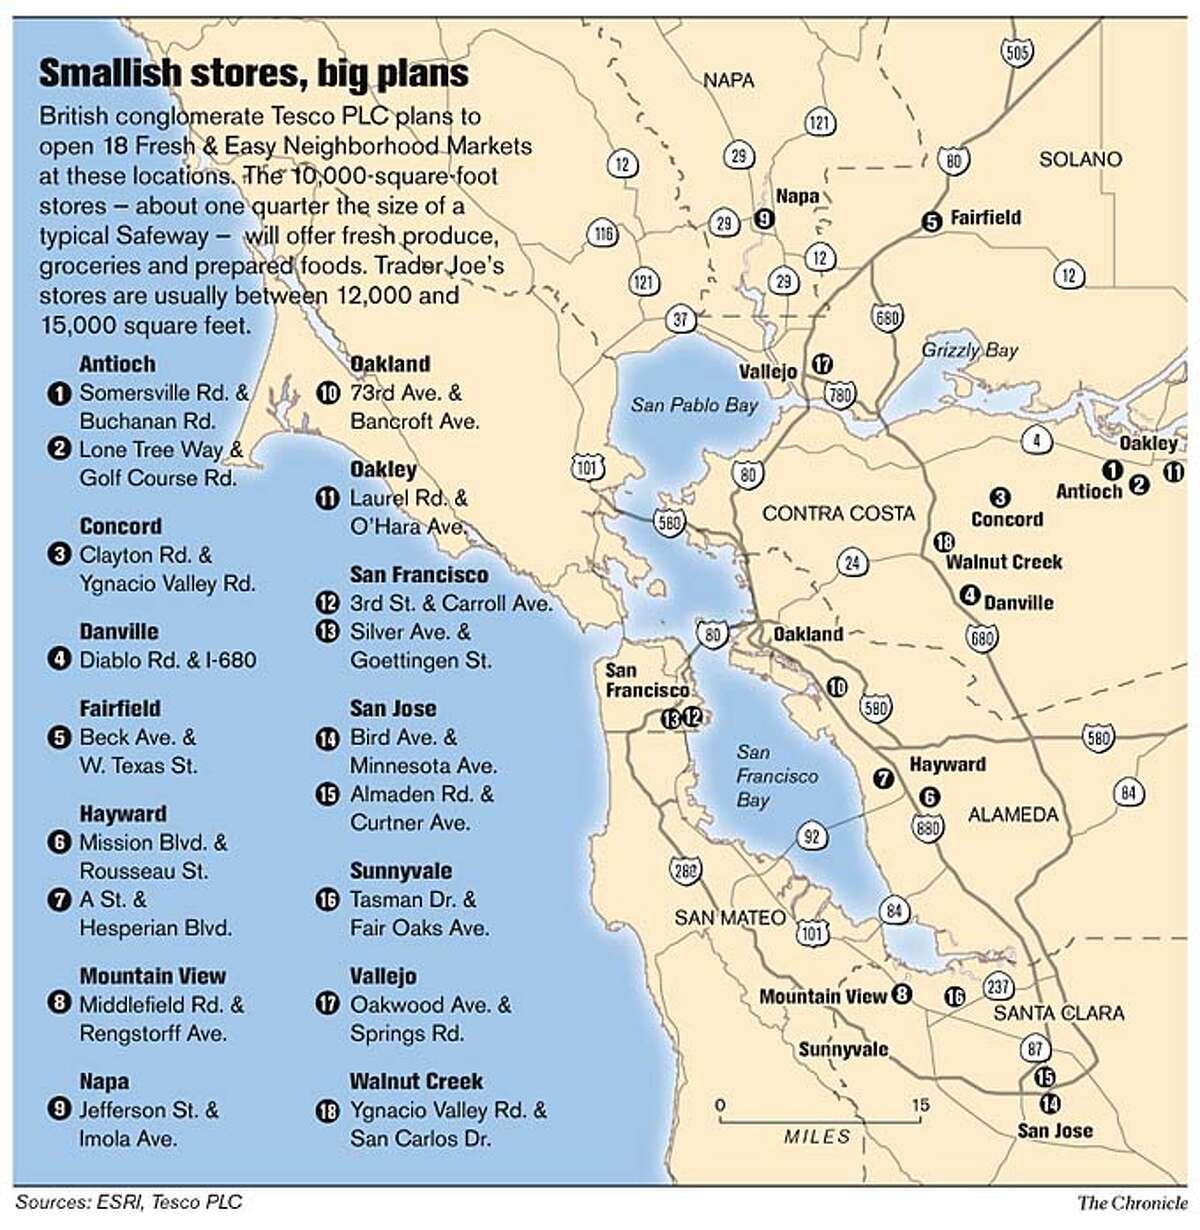 Smallish stores, big plans. Chronicle Graphic